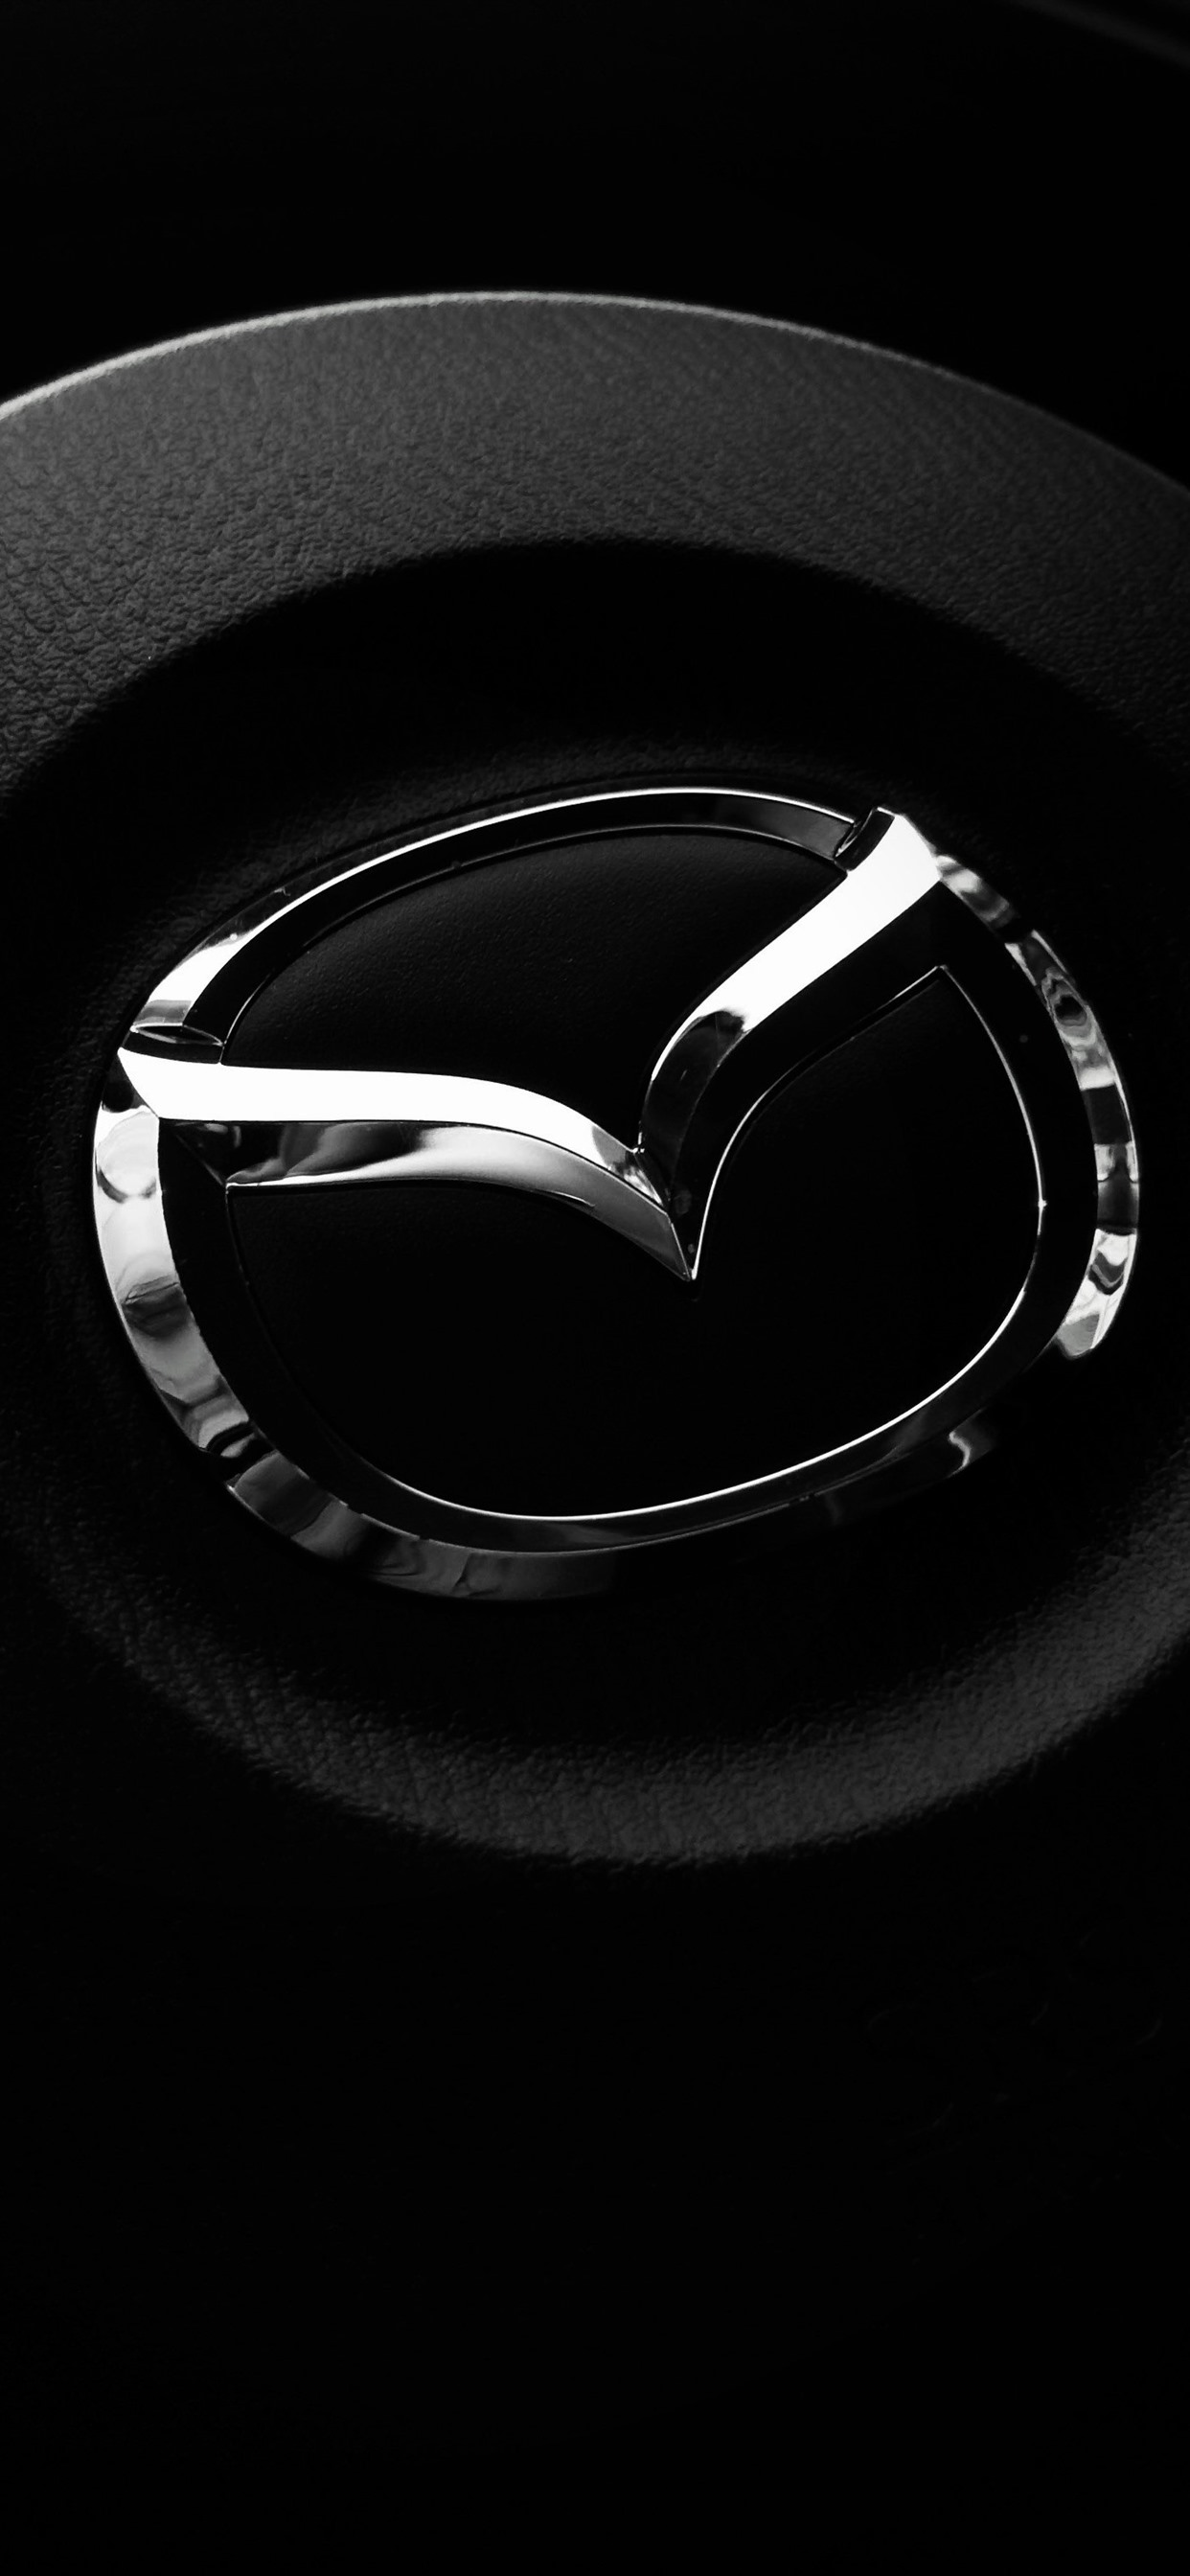 Mazda Logo Steering Wheel 1242x2688 Iphone 11 Pro Xs Max Wallpaper Background Picture Image